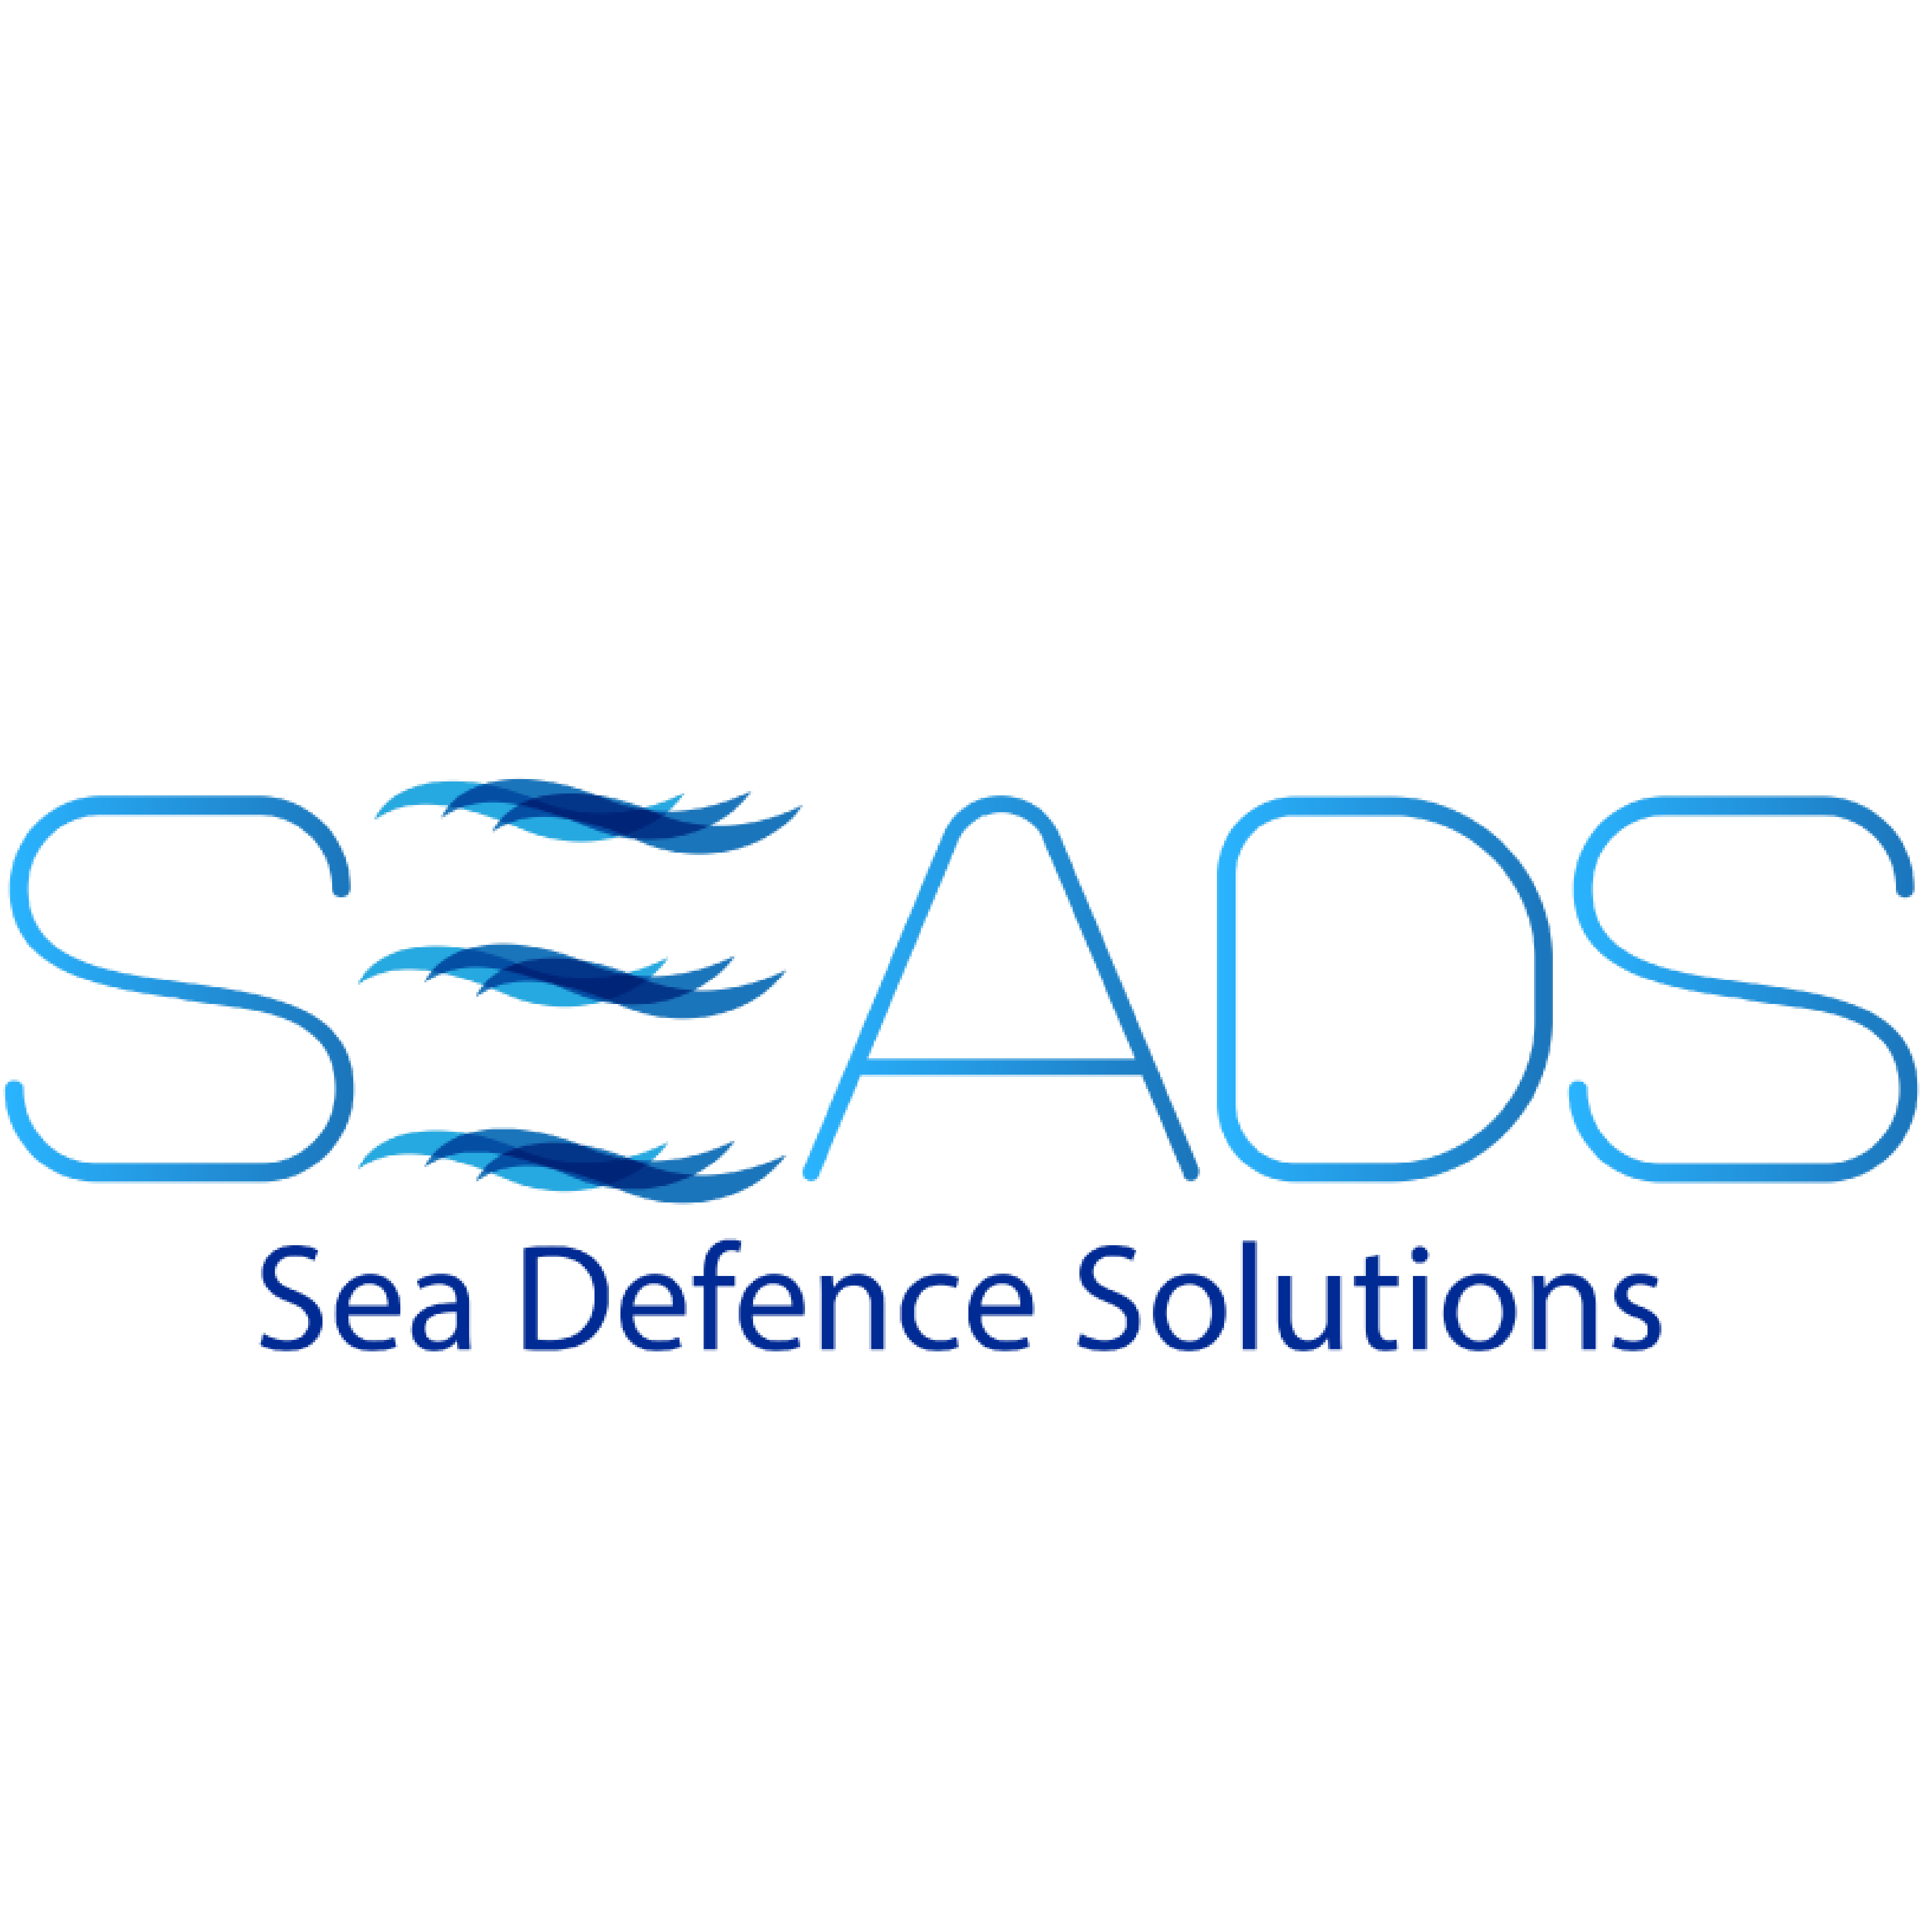 Sea Defence Solutions